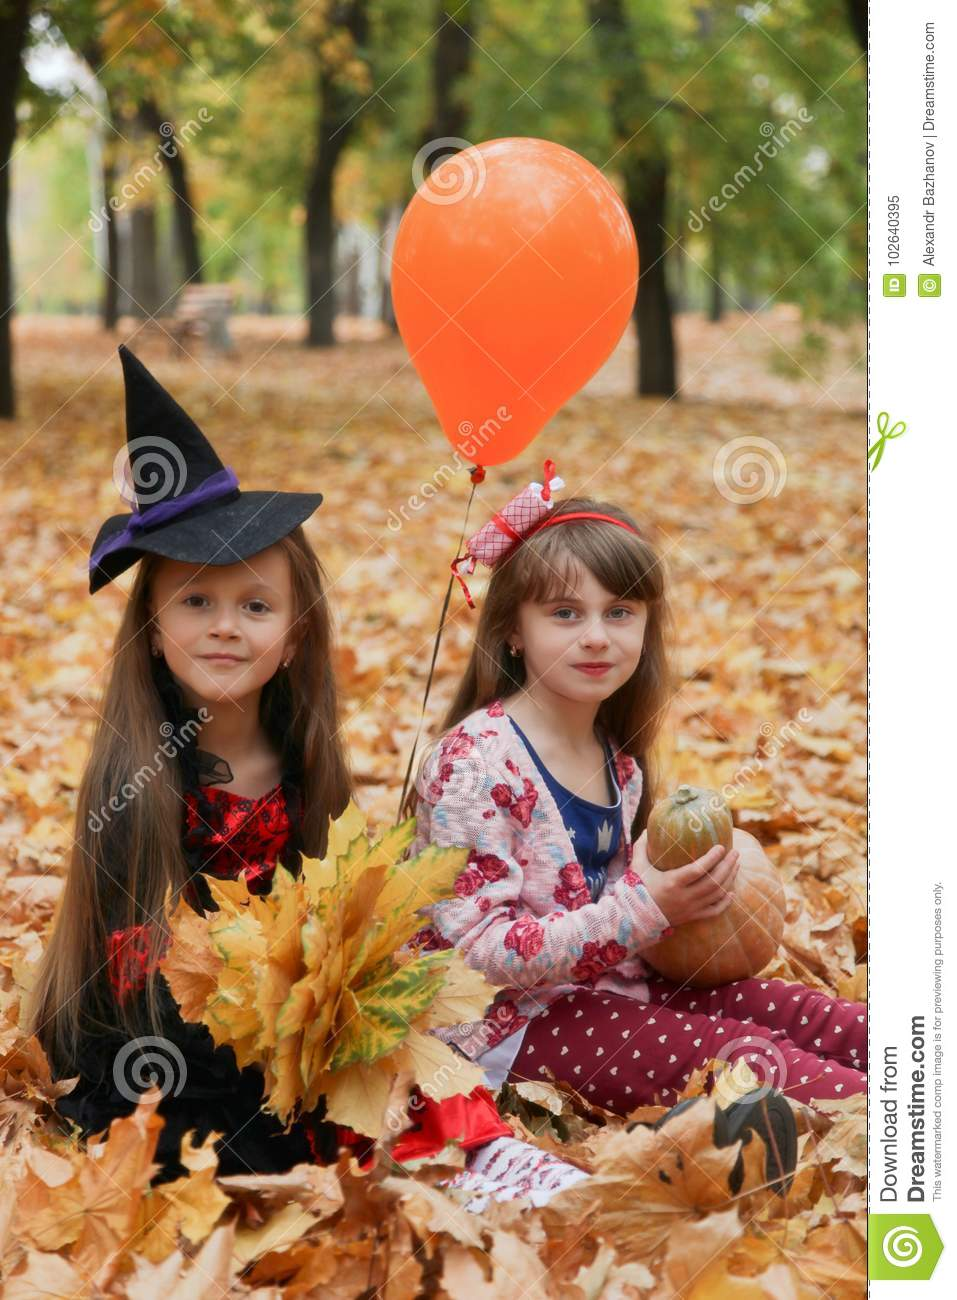 download two girls in halloween costumes stock image image of candy park 102640395